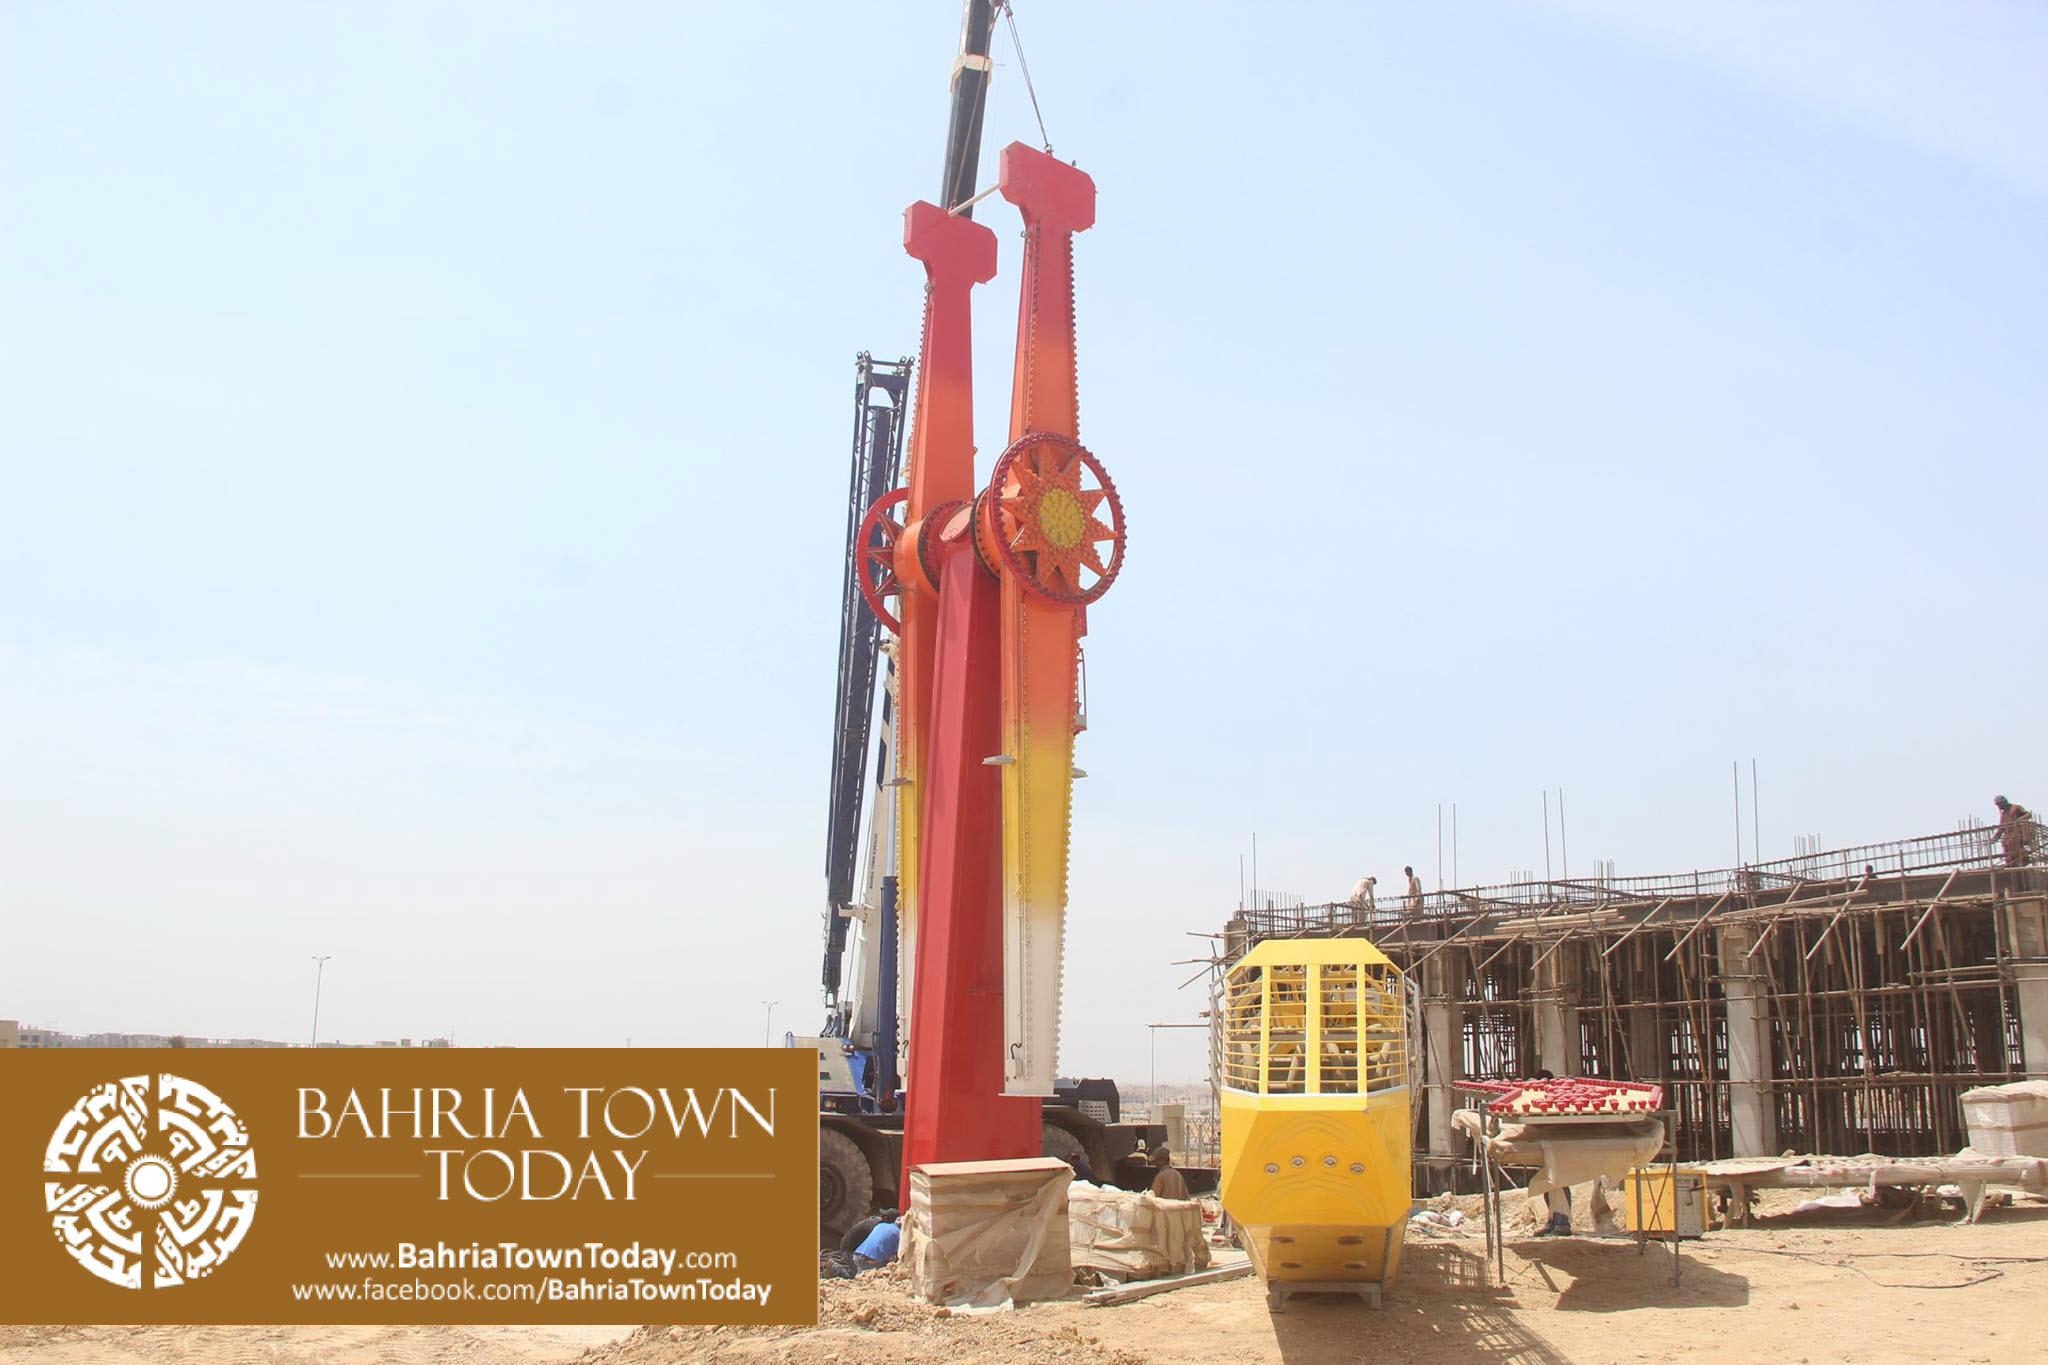 Bahria Adventura Theme Park Karachi Latest Progress Update – April 2016 (2)